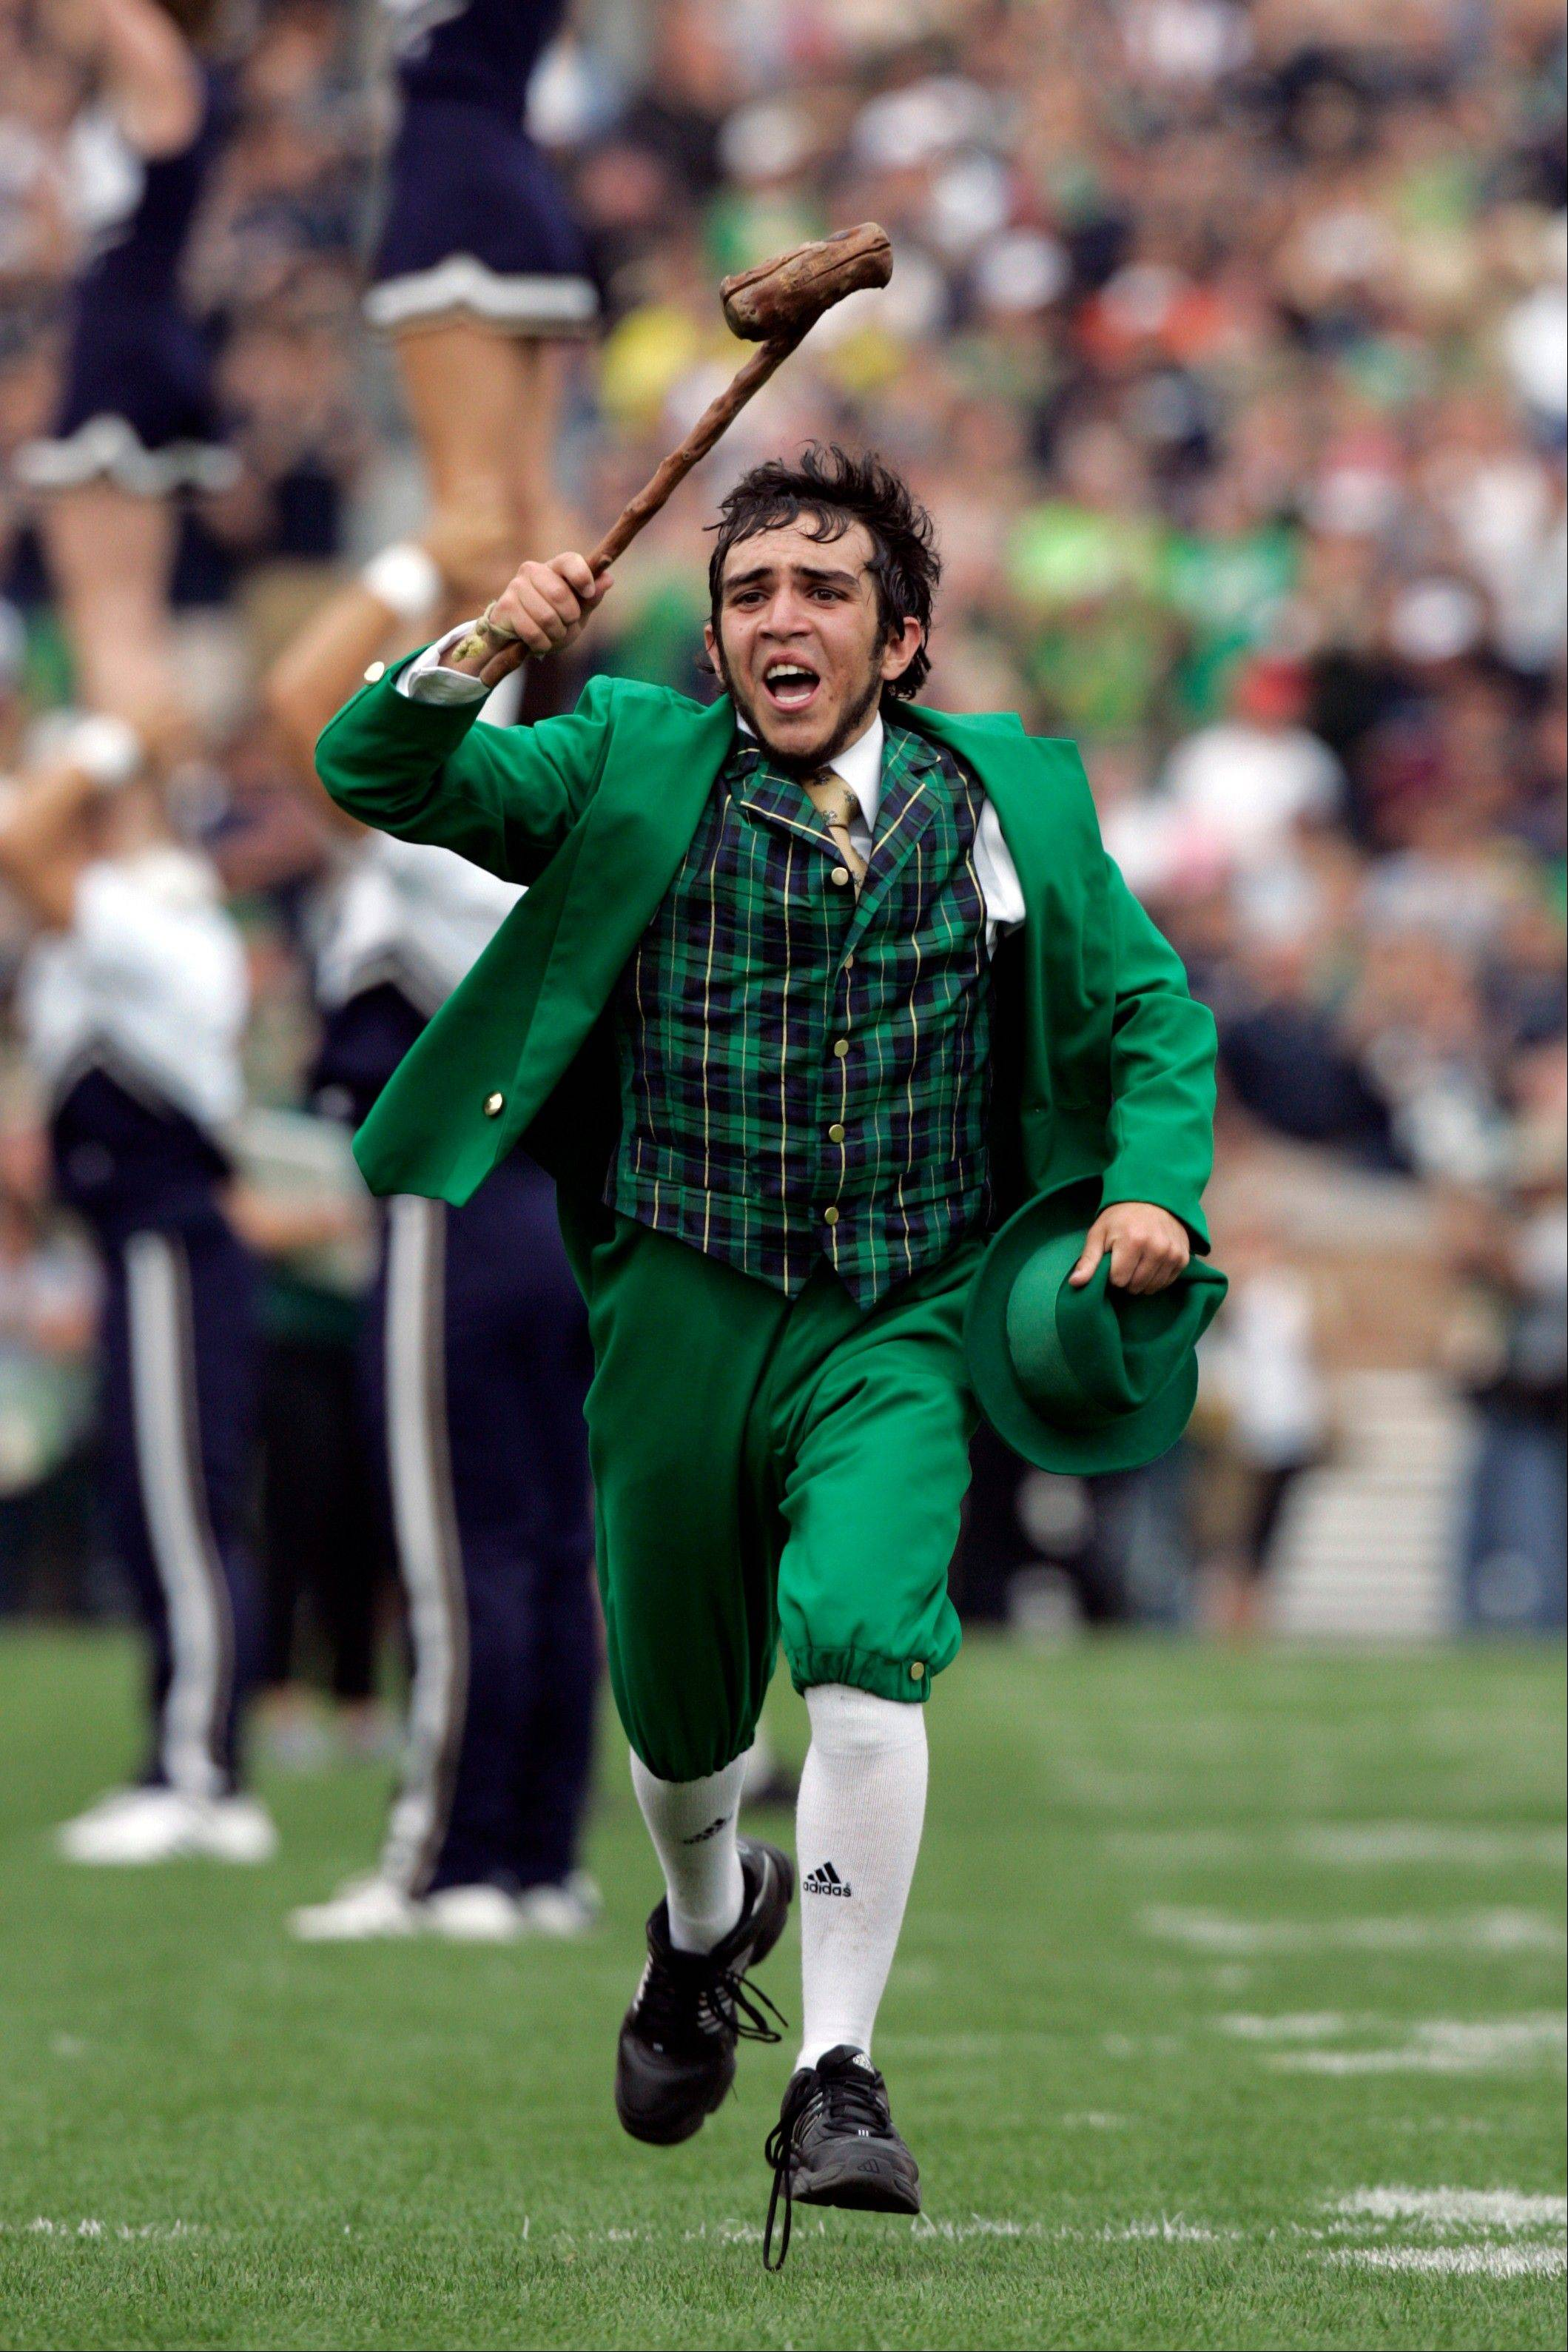 The Notre Dame leprechaun mascot takes the field.